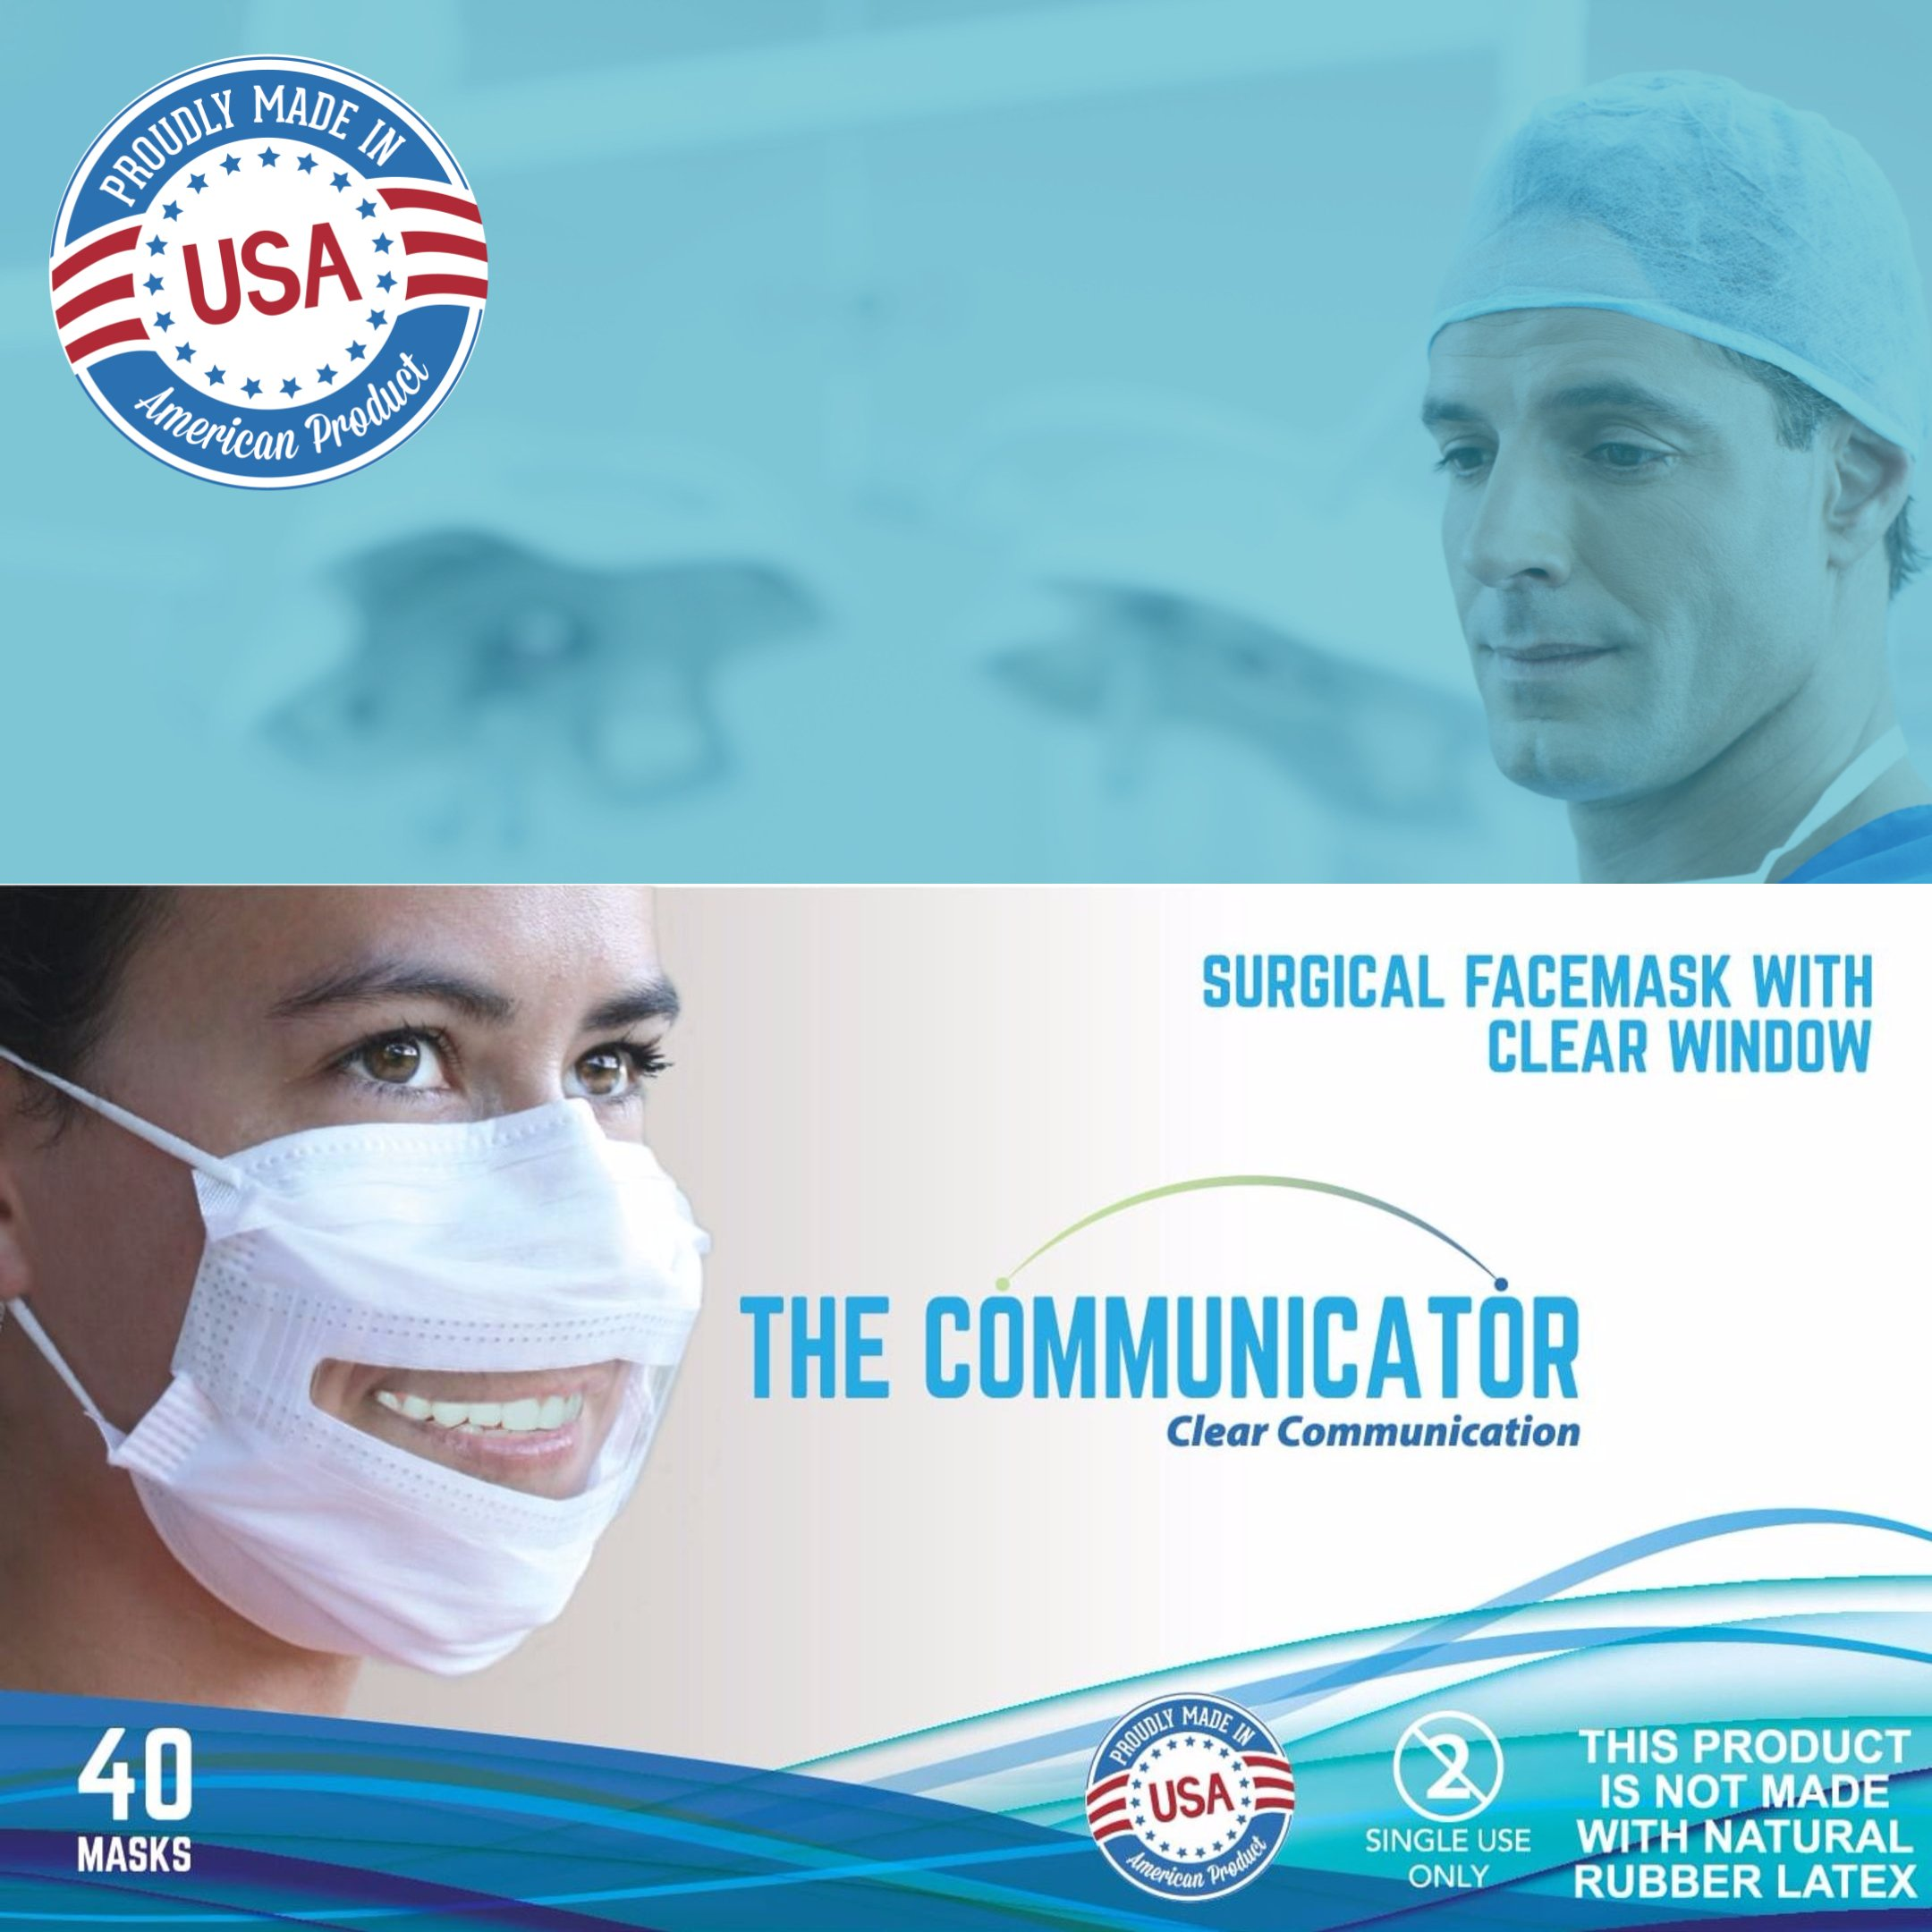 Communicator Surgical Face Mask with Clear Window (Easy Dispenser Box of 40 Masks) FDA Registered by Safe'N'Clear